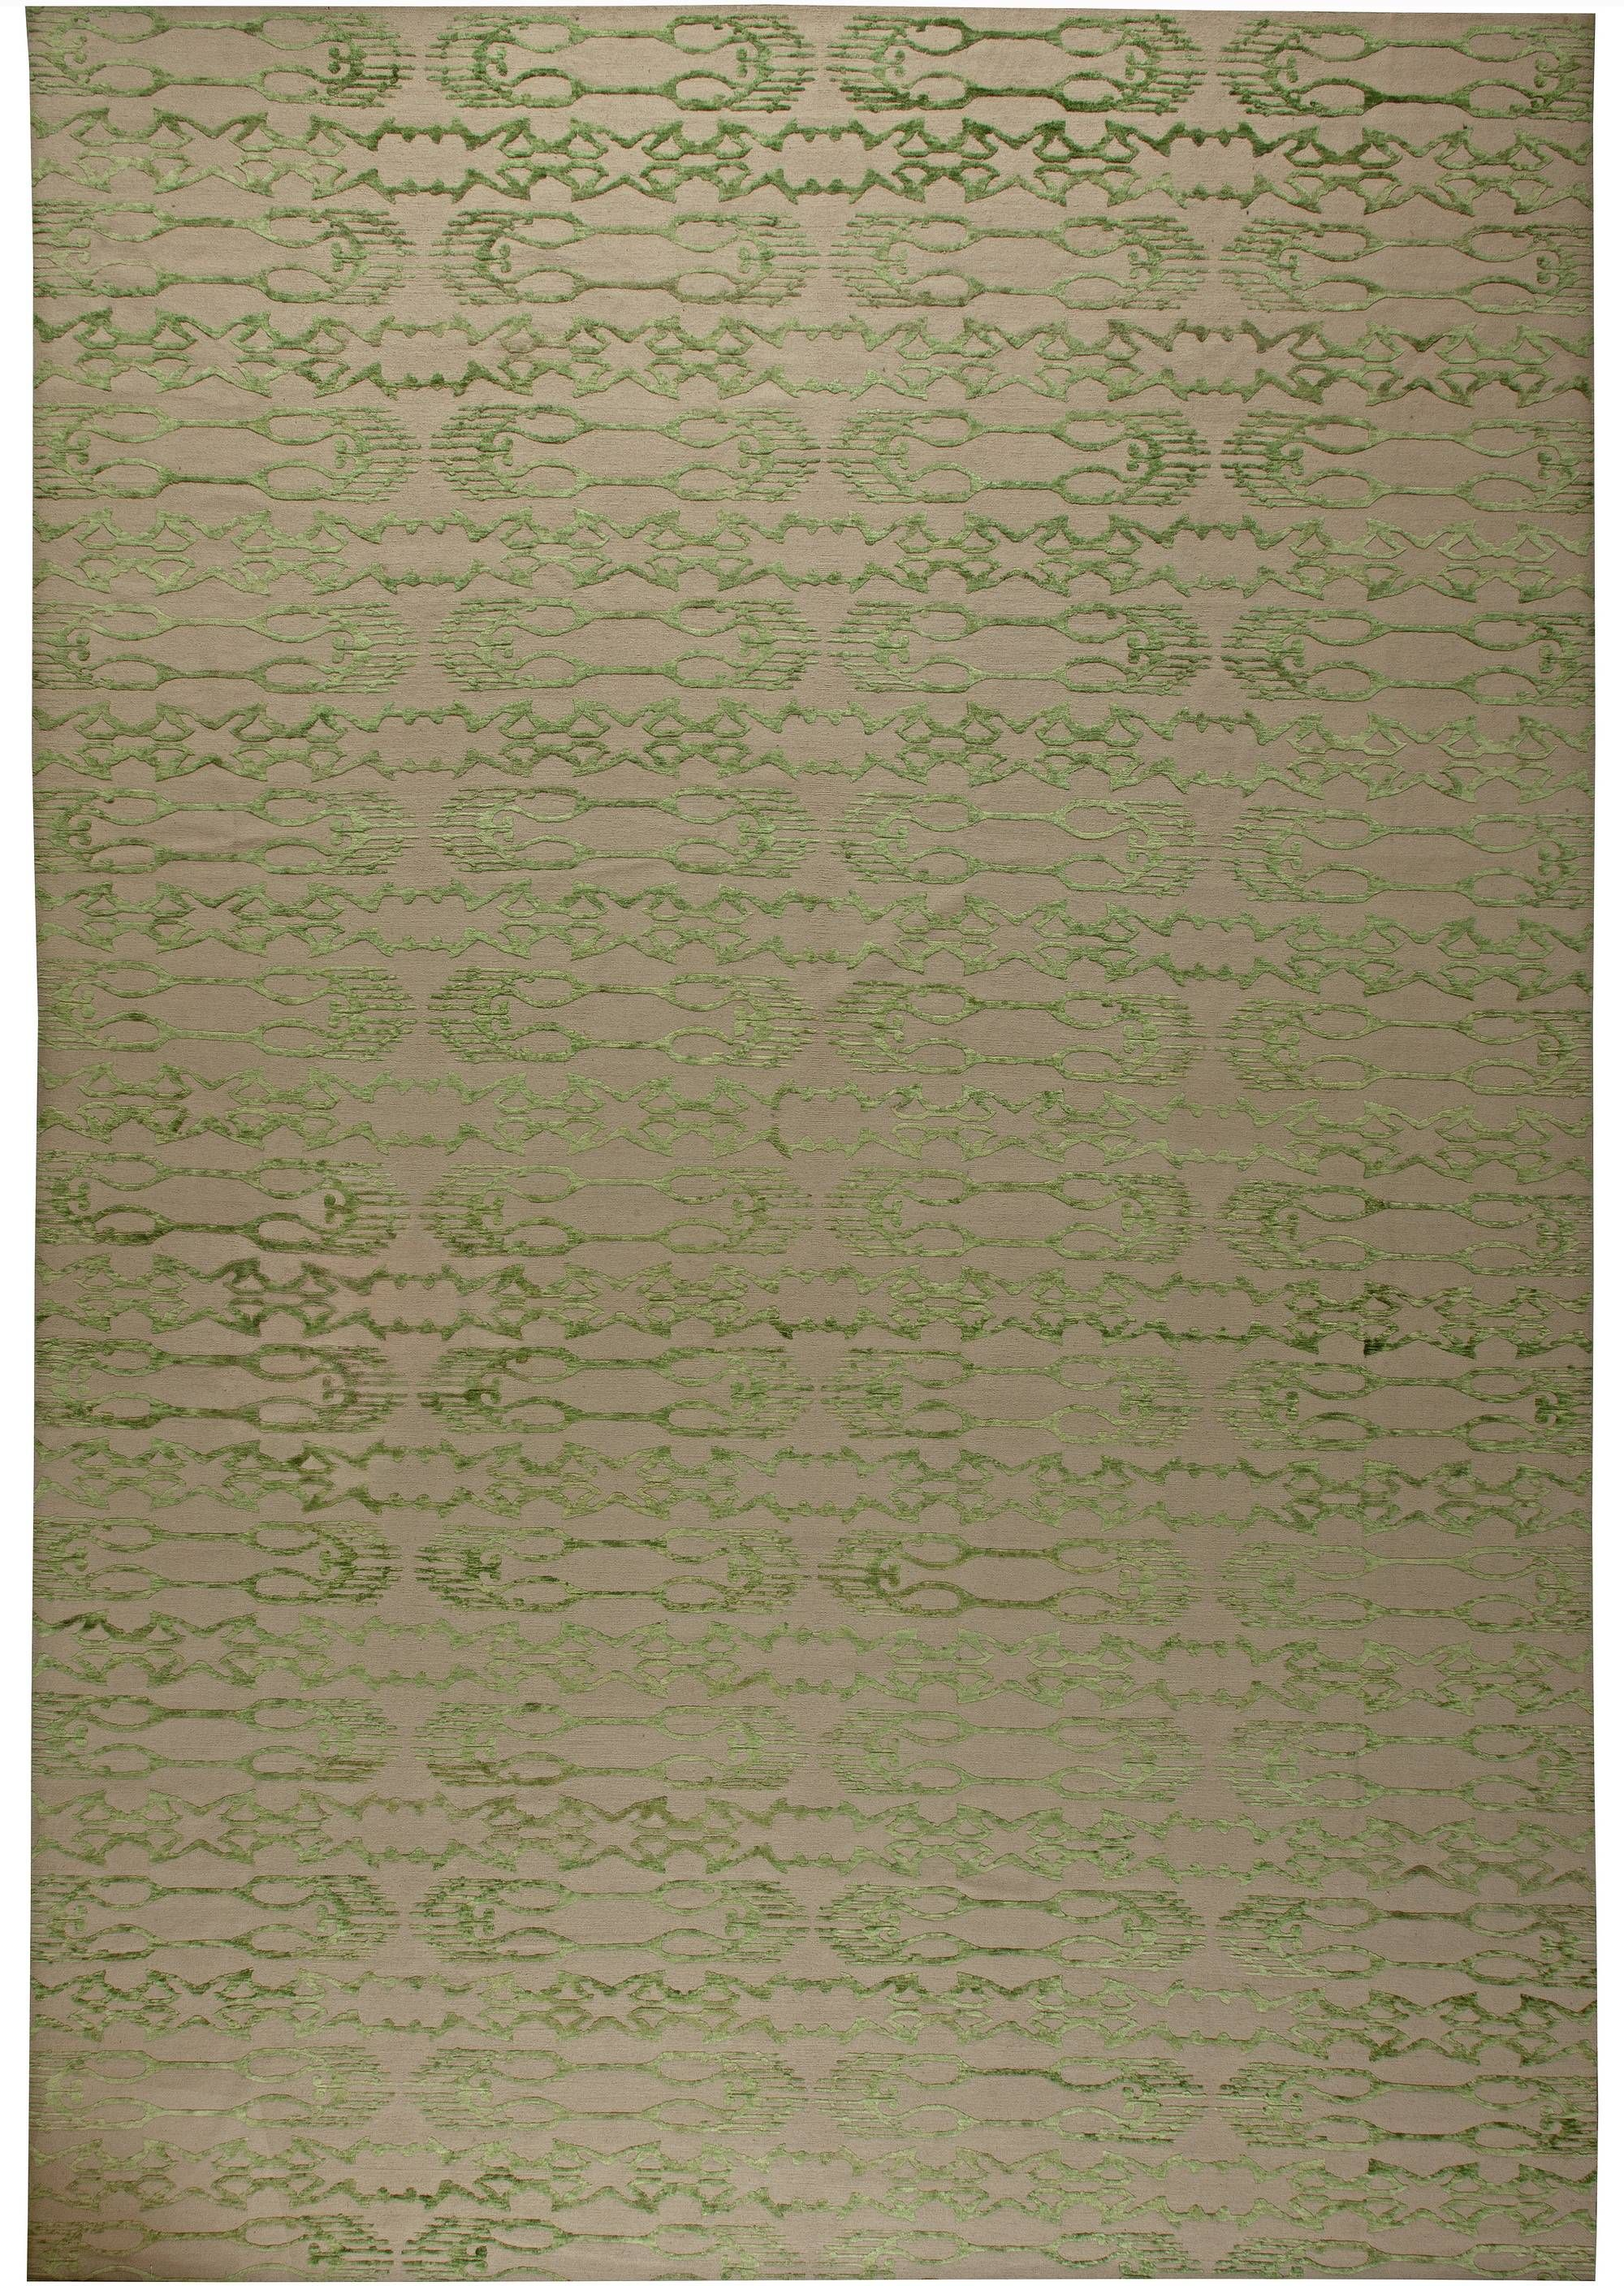 Contemporary Rugs Rug In Green Modern Style Perfect For Interior Decor Living Room Geometric Pattern